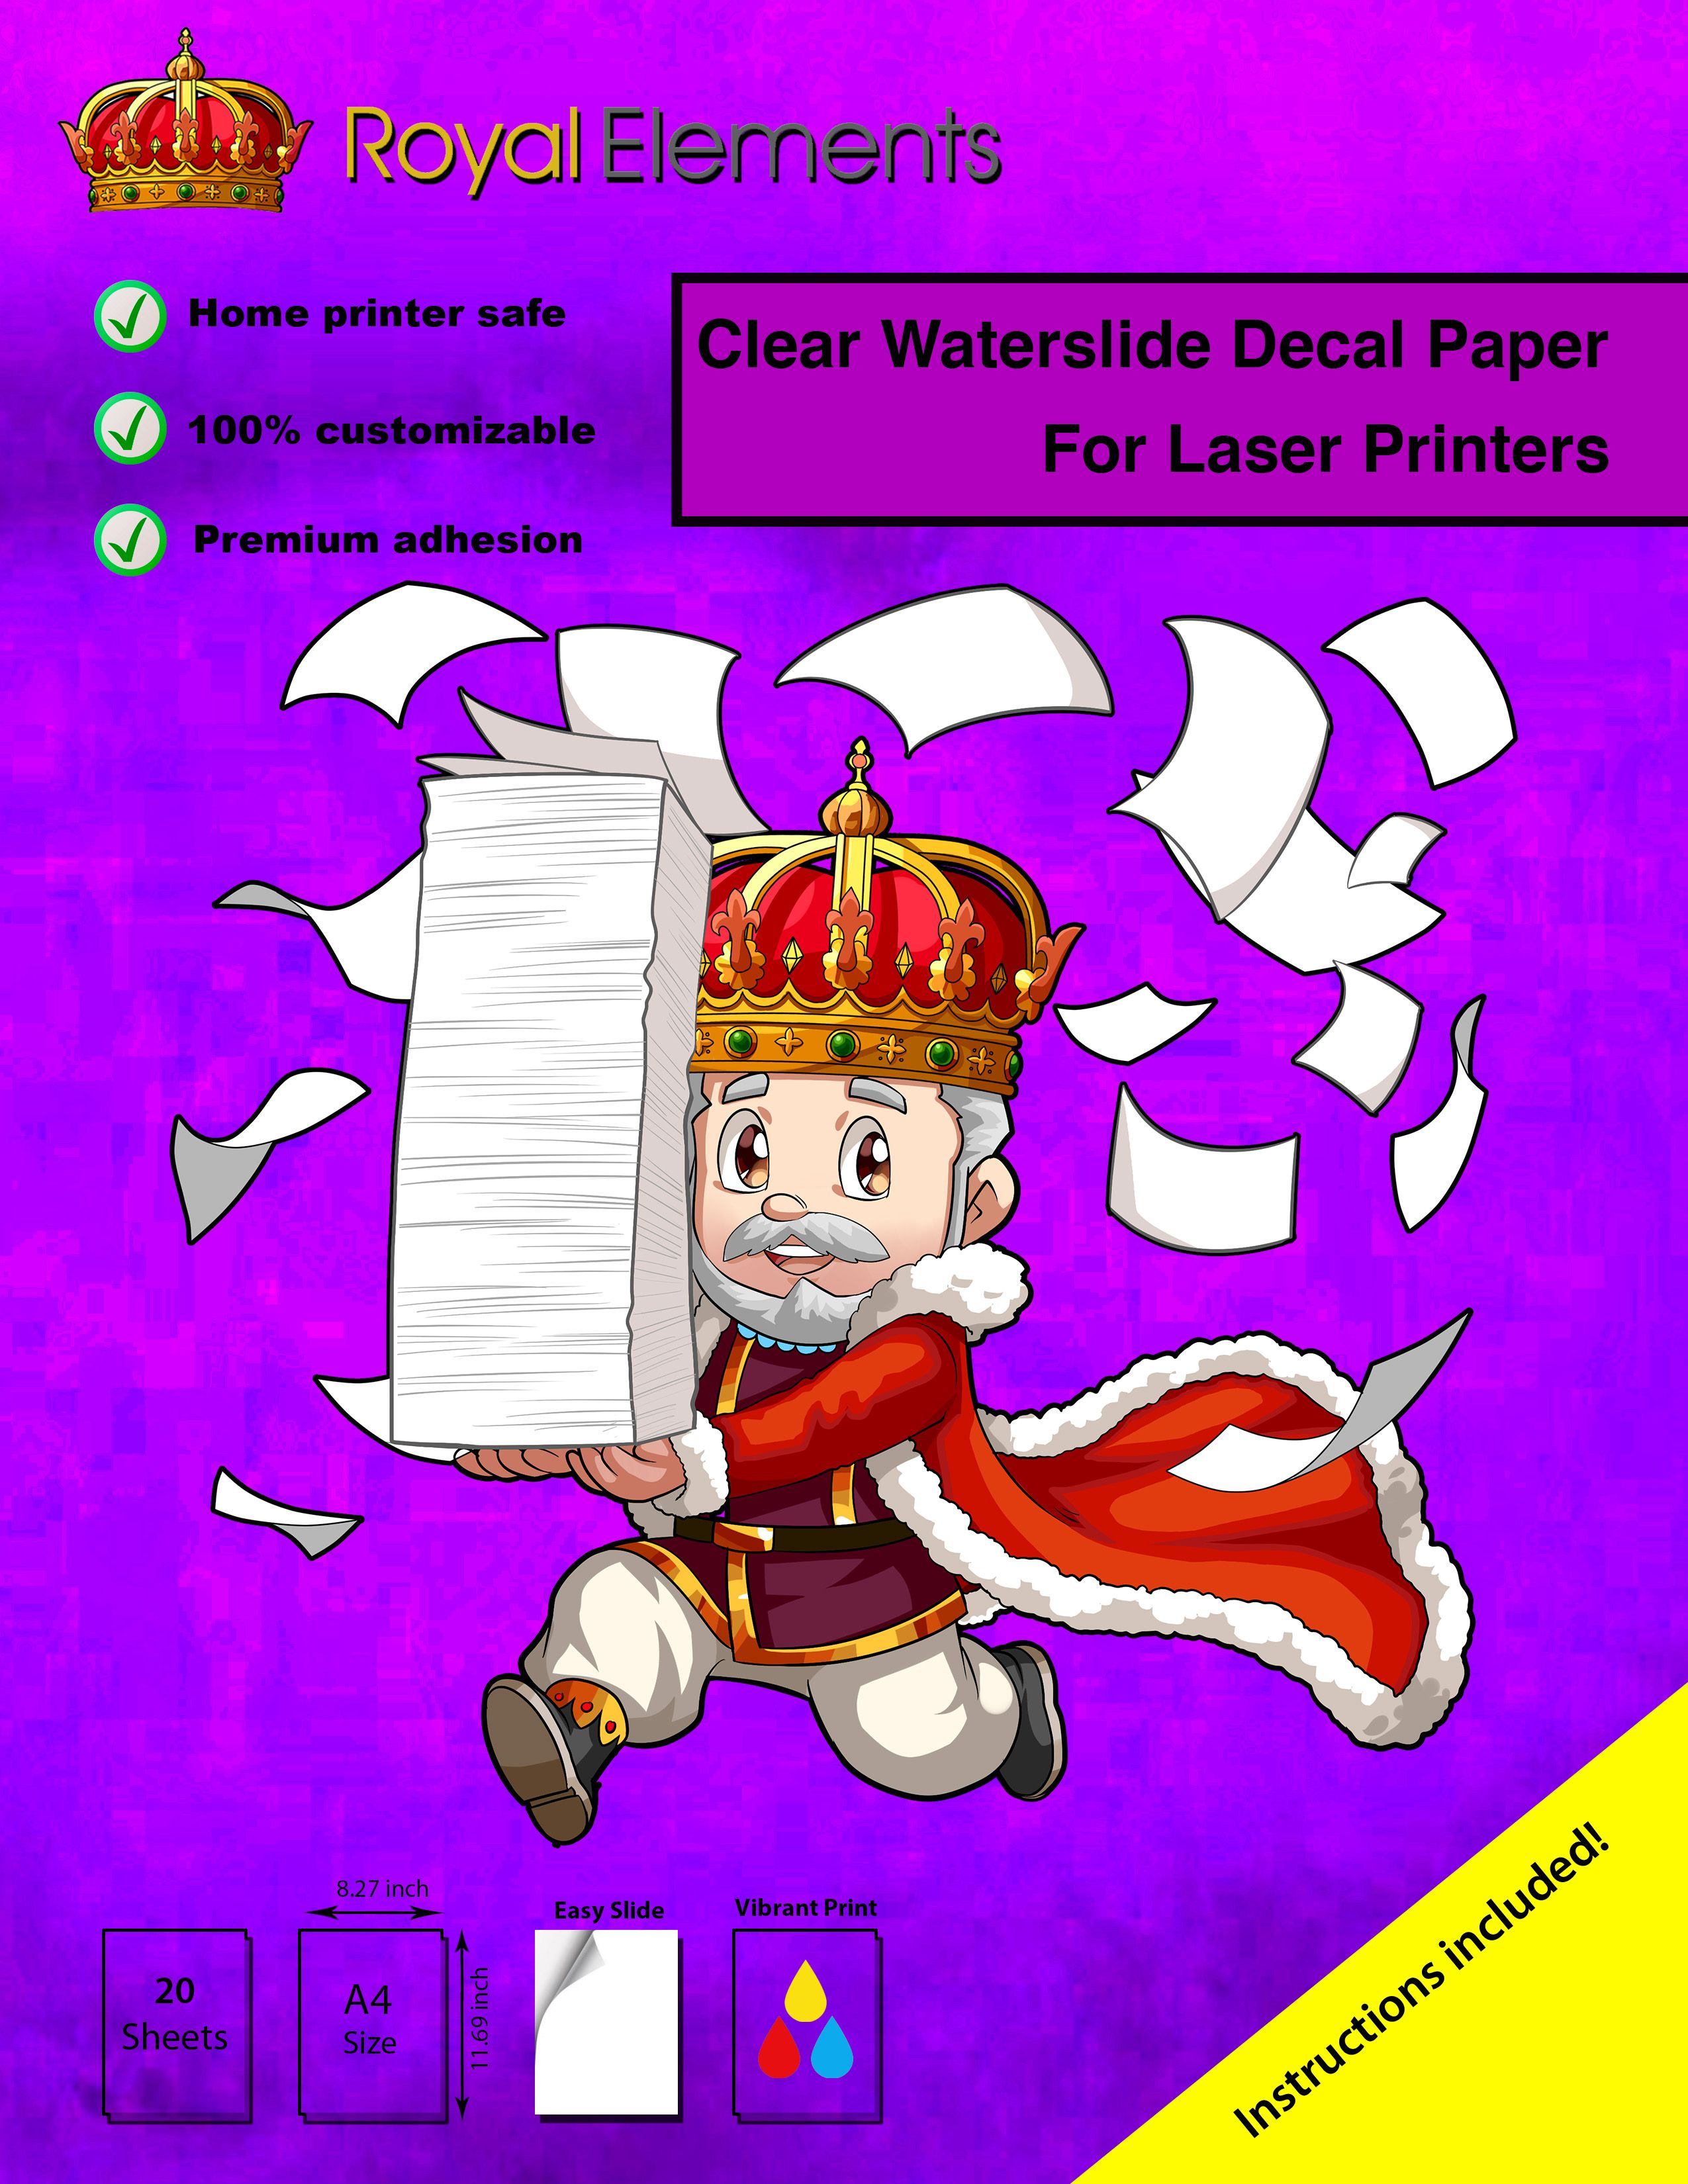 Royal Elements Clear Waterslide Decal Paper For Laser Printers Now Available At Our Store On Amazon Waterslide Decal Paper Vinyl Sticker Paper Decal Paper